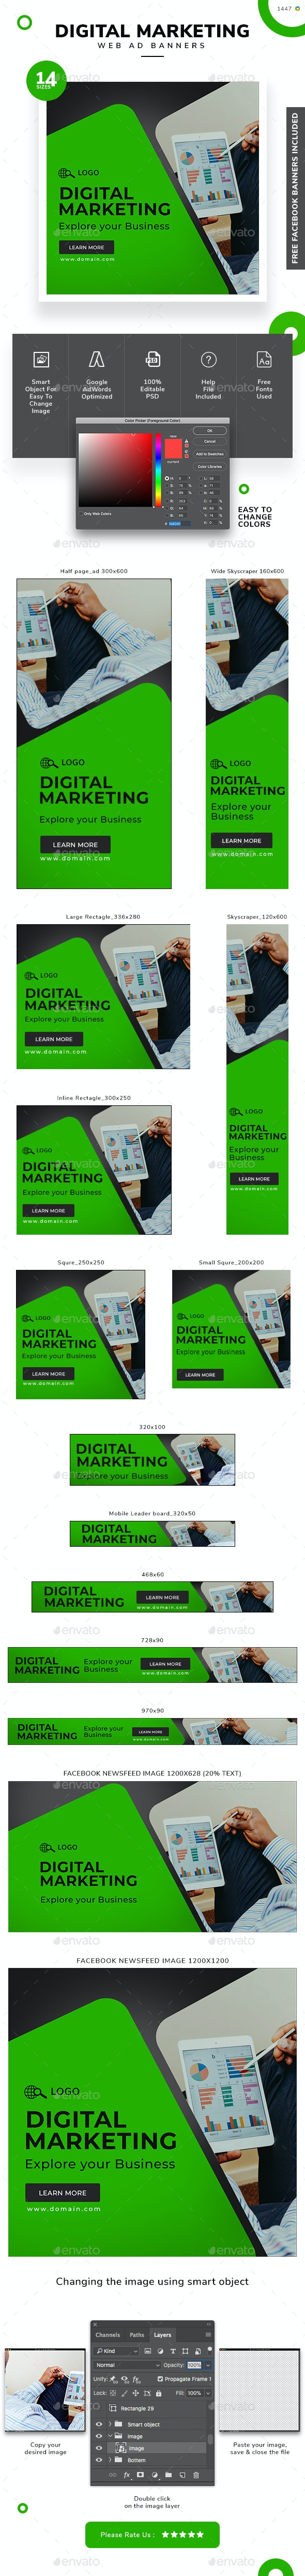 Digital Marketing Web Banner Set - Banners & Ads Web Elements